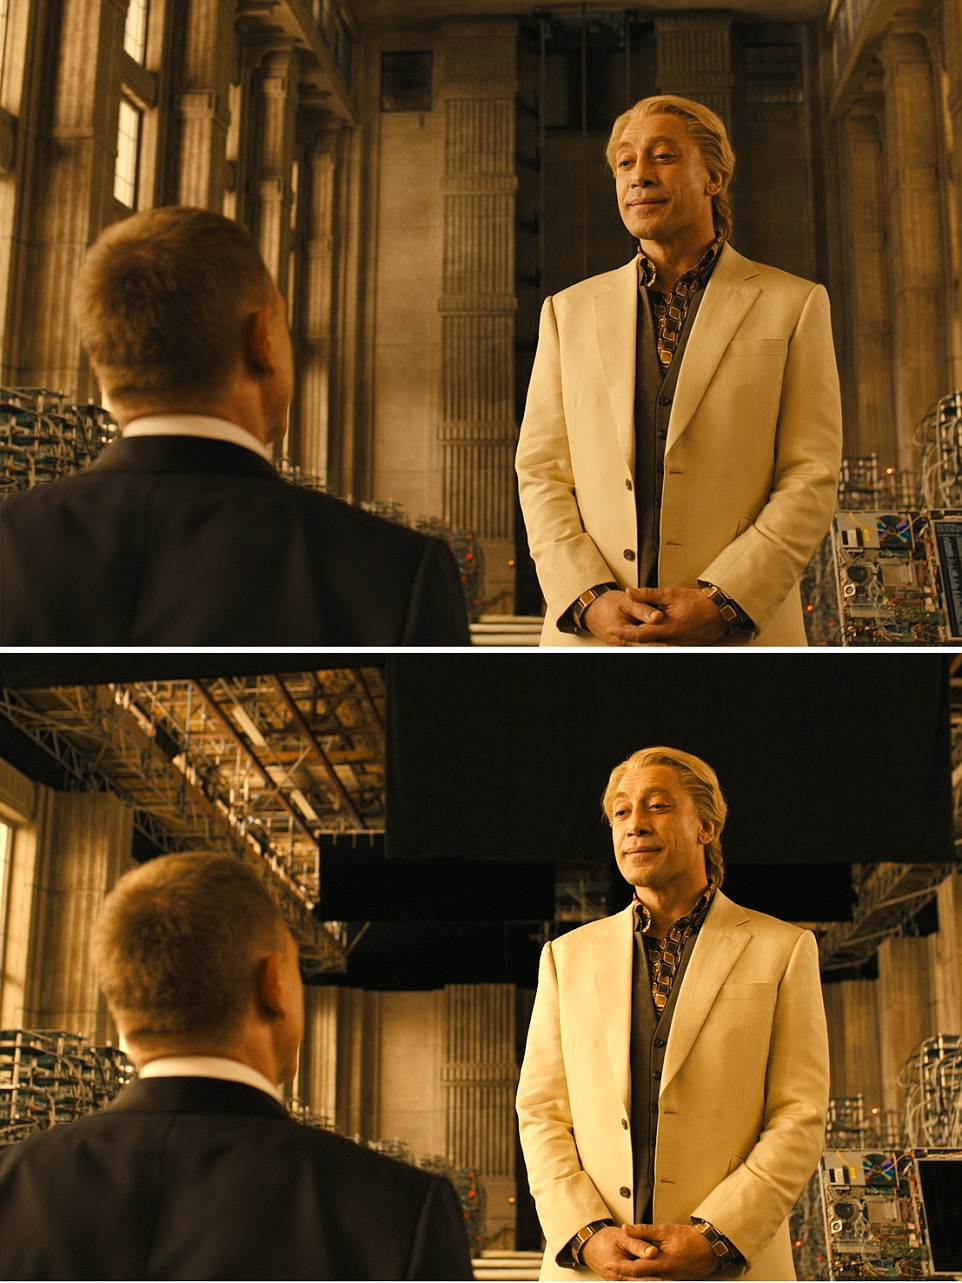 Skyfall (2012) Daniel Craig (LEFT) lured into the 'not so grand' lair of villain Raoul Silva (Javier Bardem - RIGHT) as special effects give the impression of a towering hall.